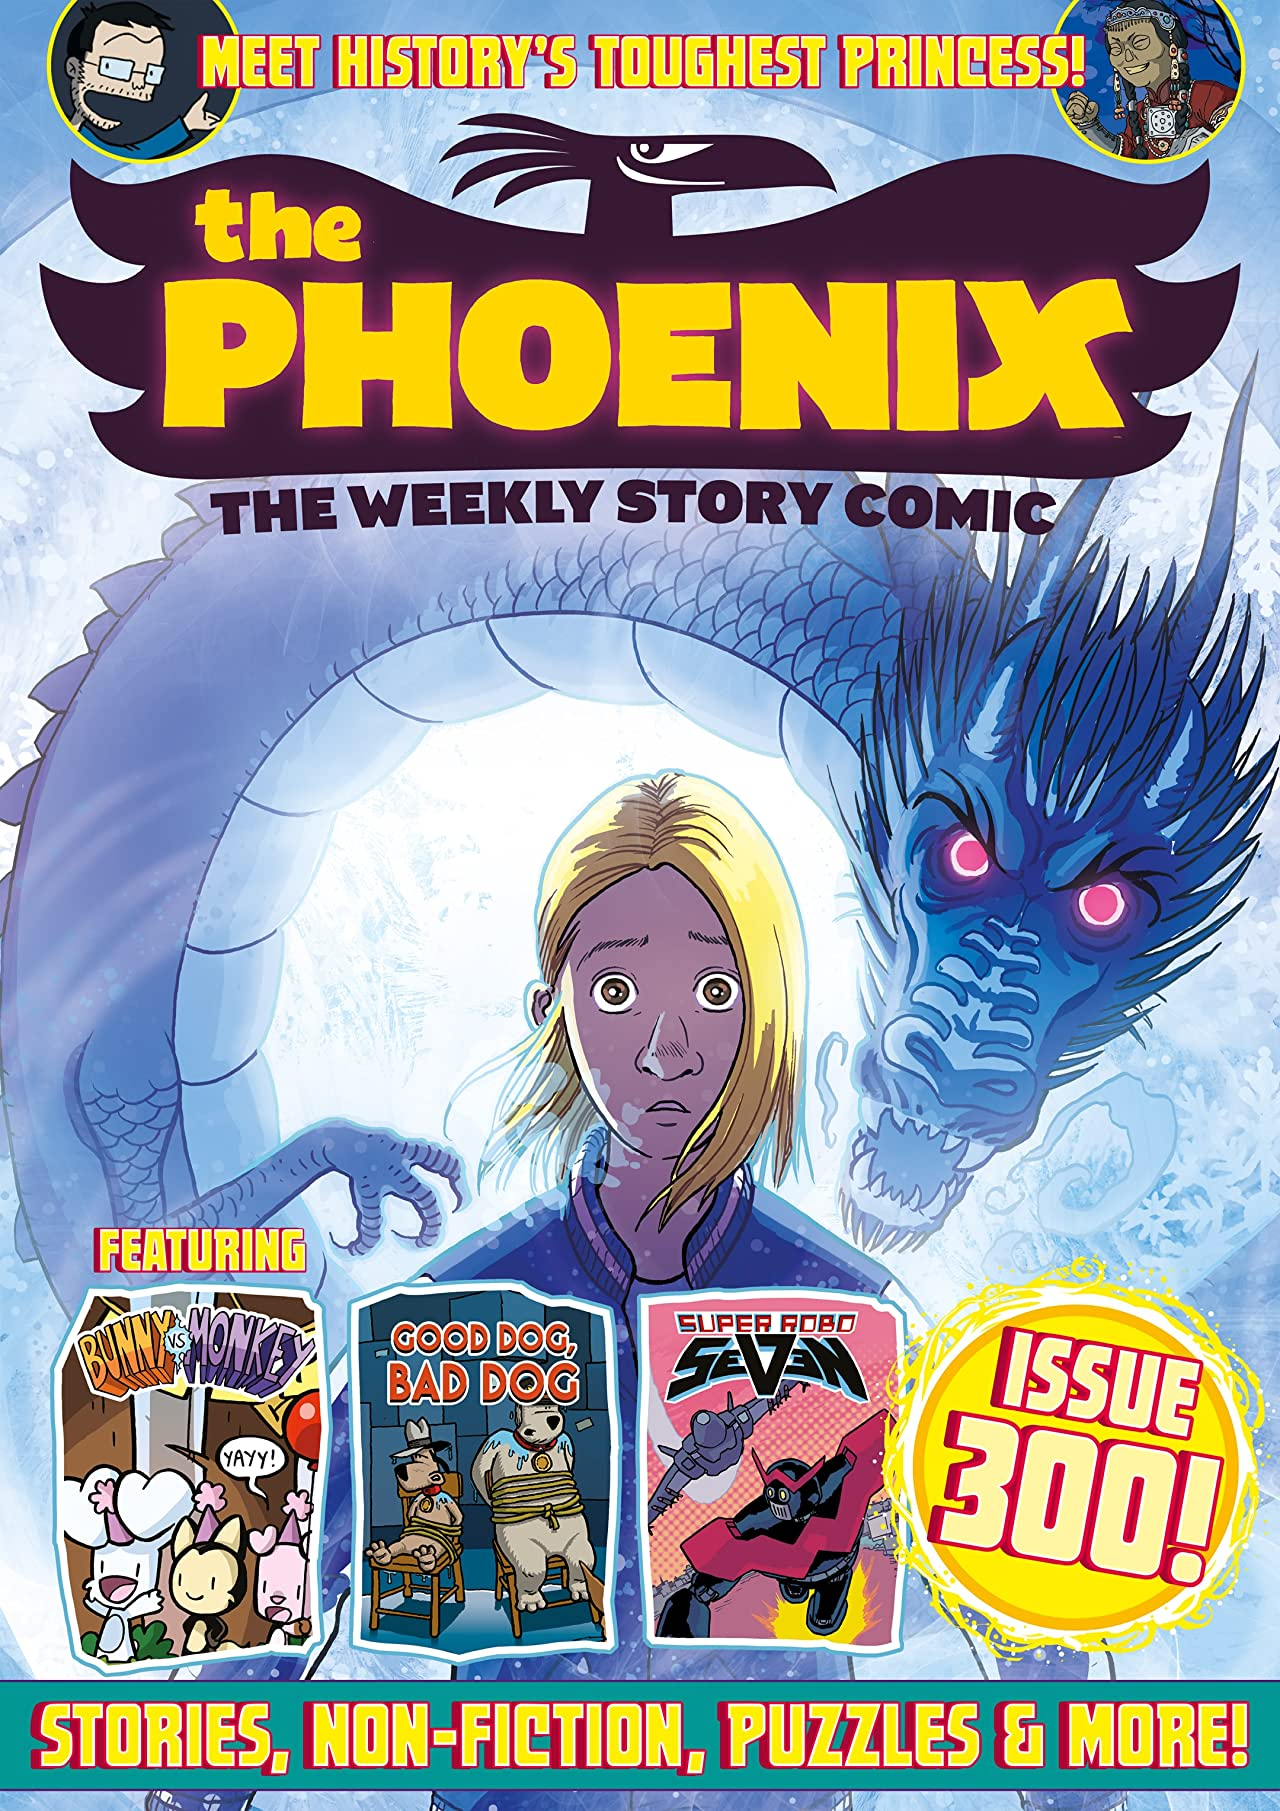 The Phoenix #300: The Weekly Story Comic